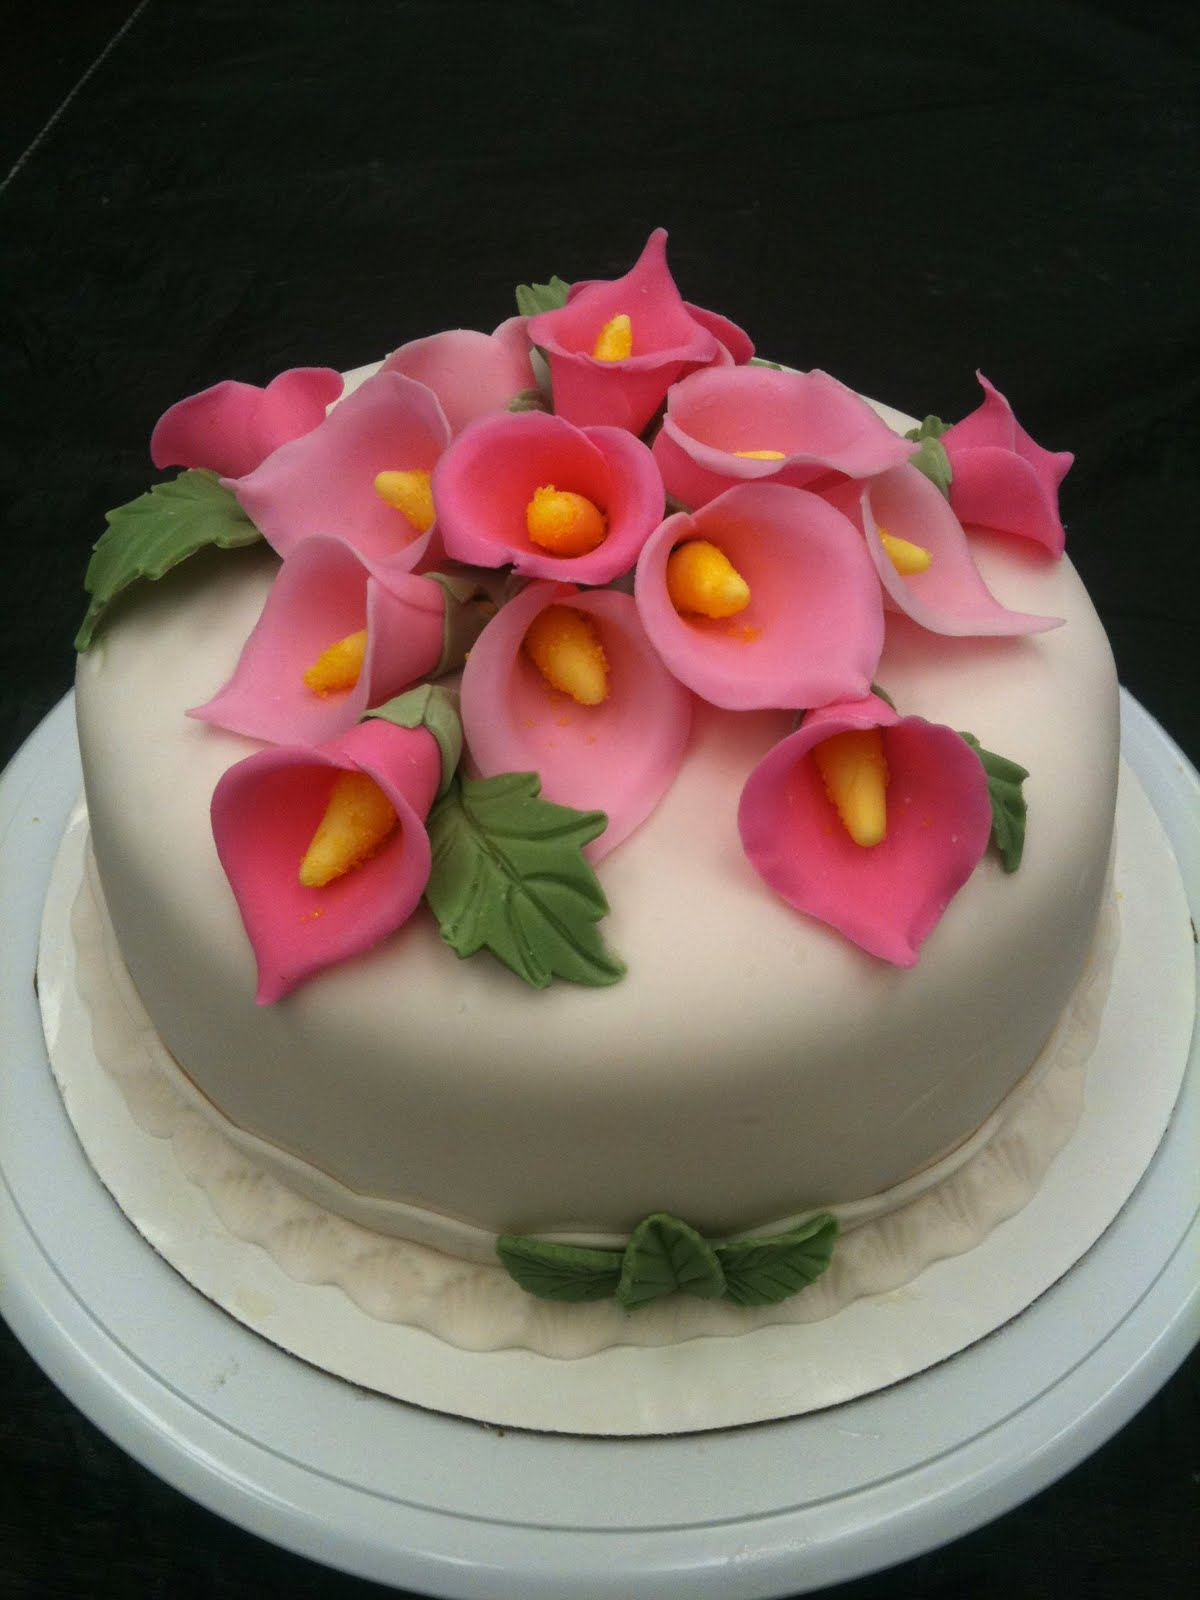 Cake Designs With Fondant : Cake Decorating by Sonia: January 2011 - Gum Paste ...